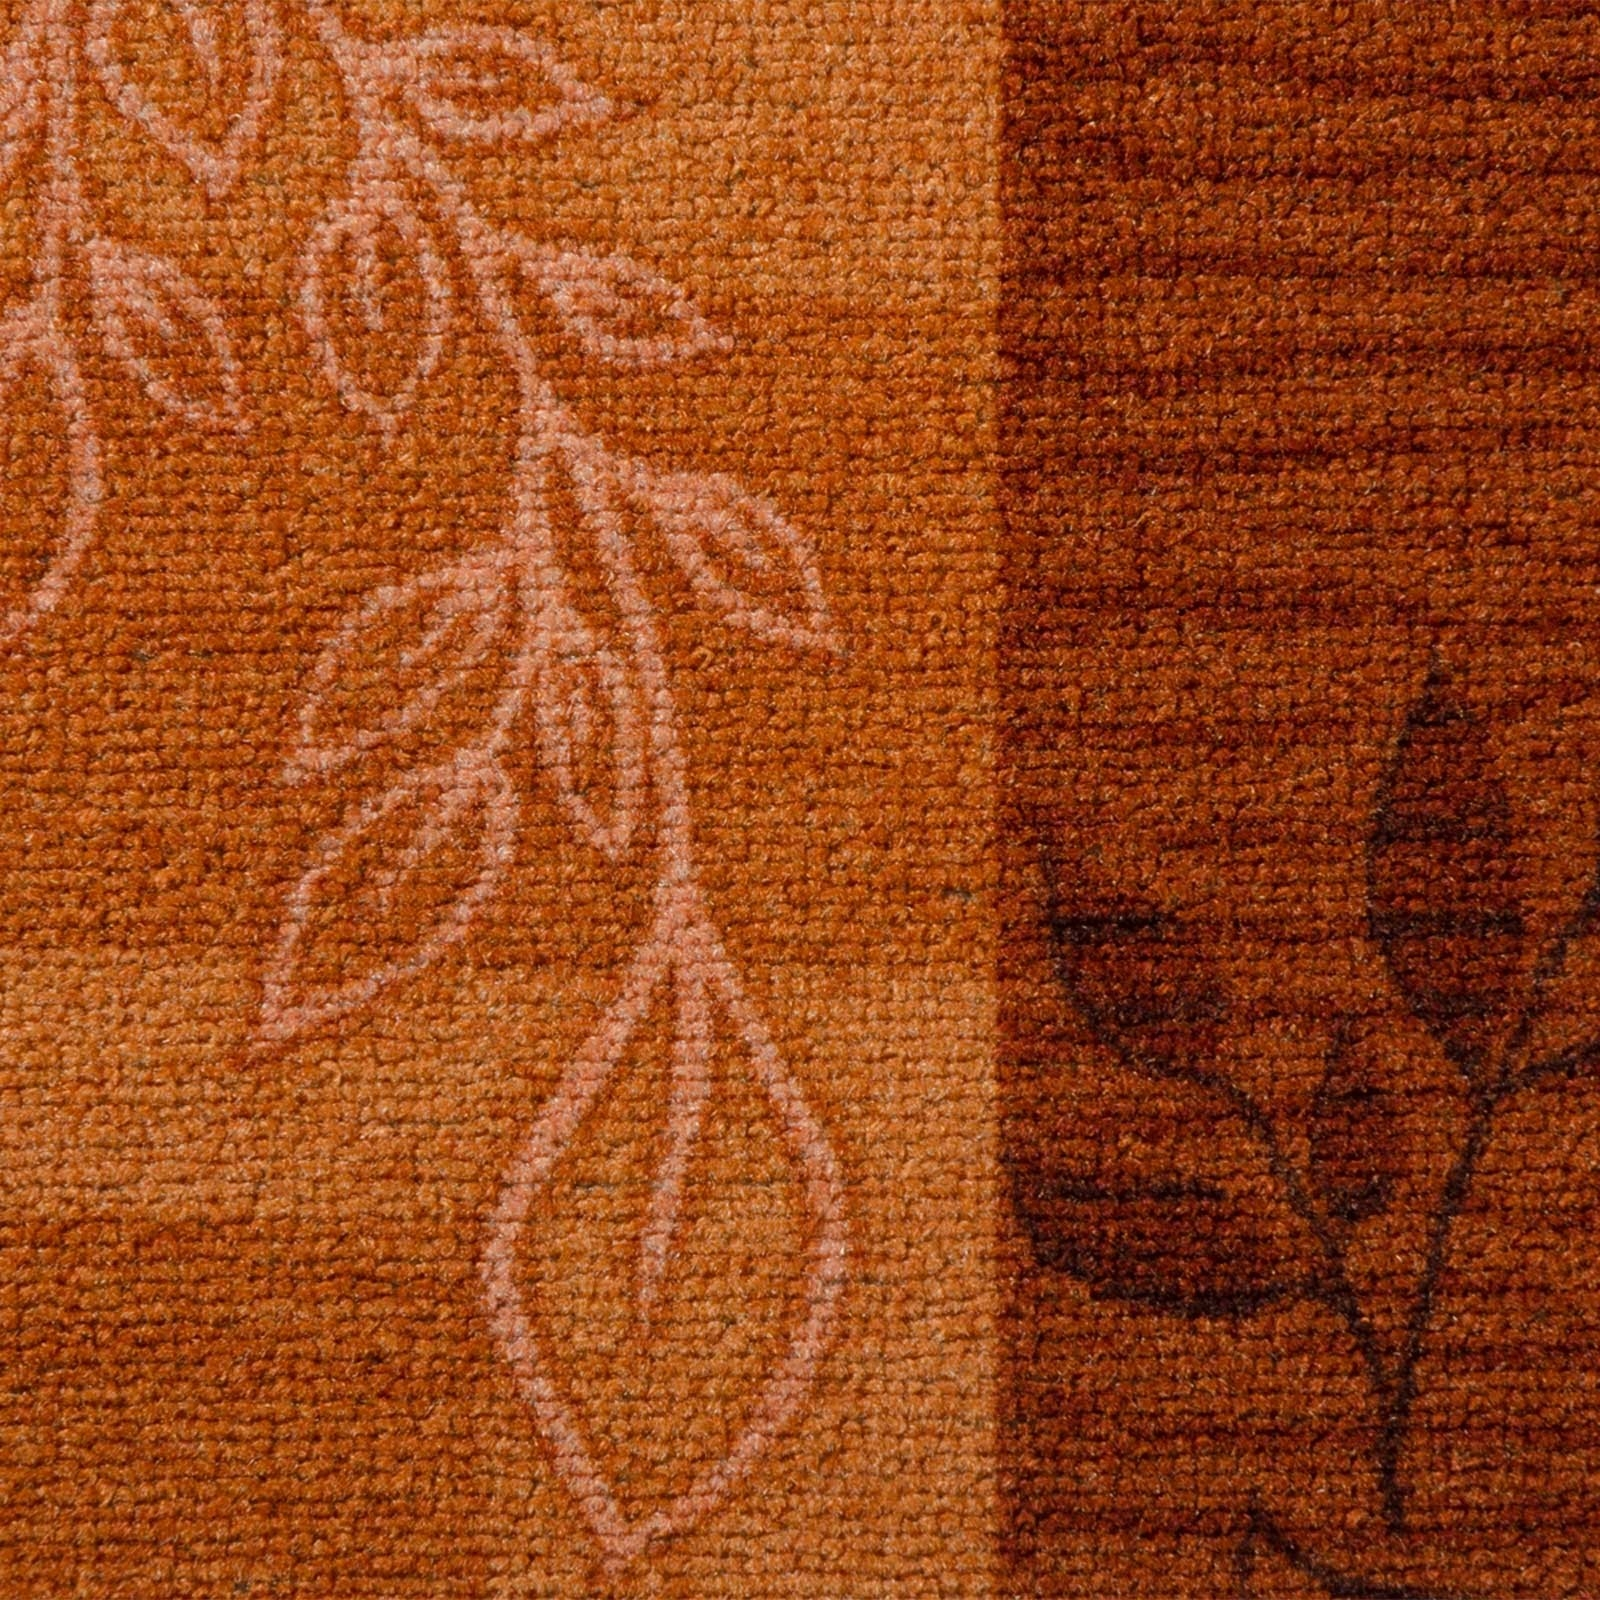 Floral Design Hallway Floor Runner Fully Customisable Pertaining To Hallway Runners Floral (#7 of 20)